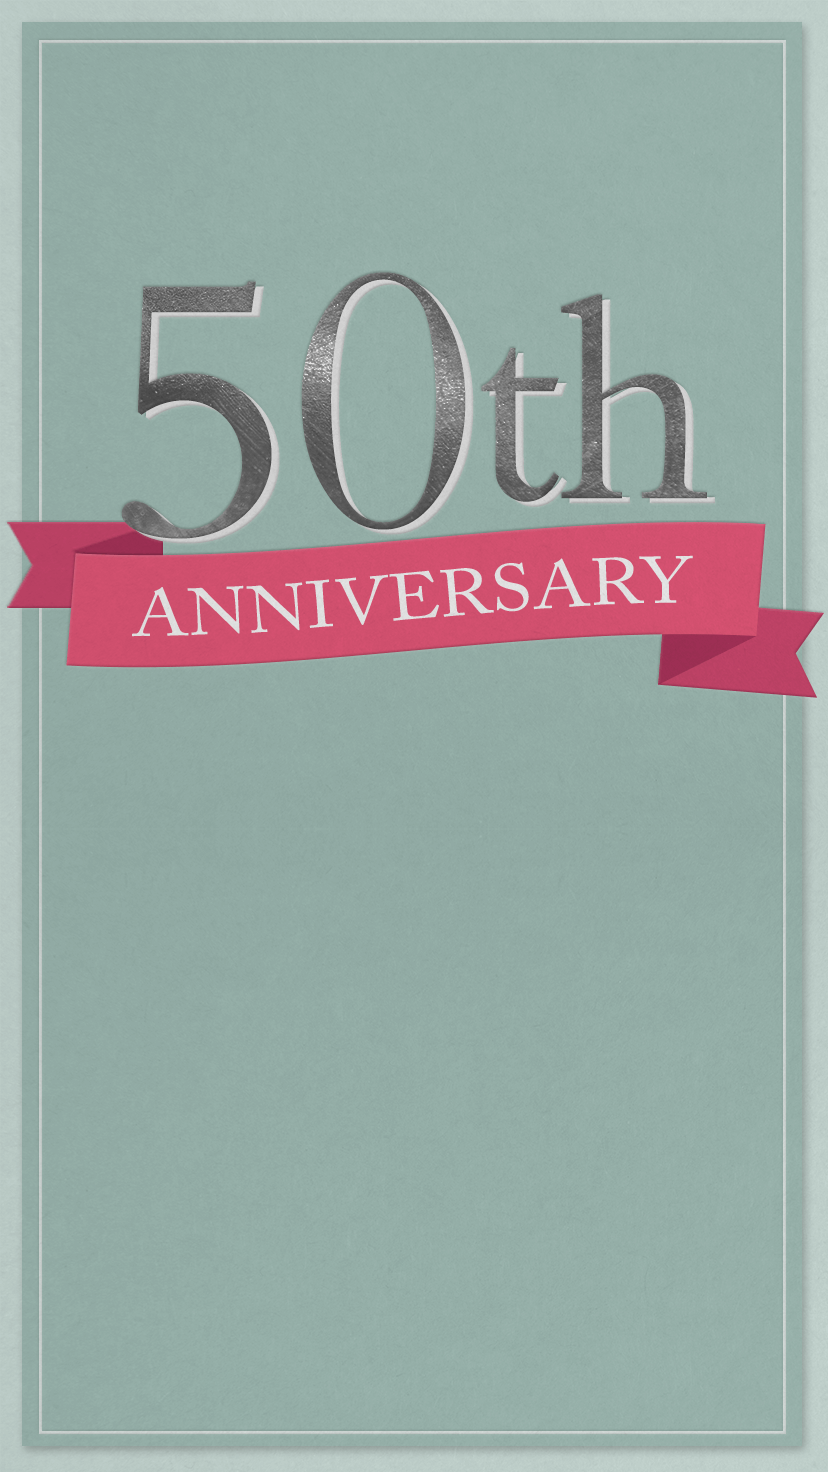 Celebrate your 50th anniversary with this free digital Evite ...